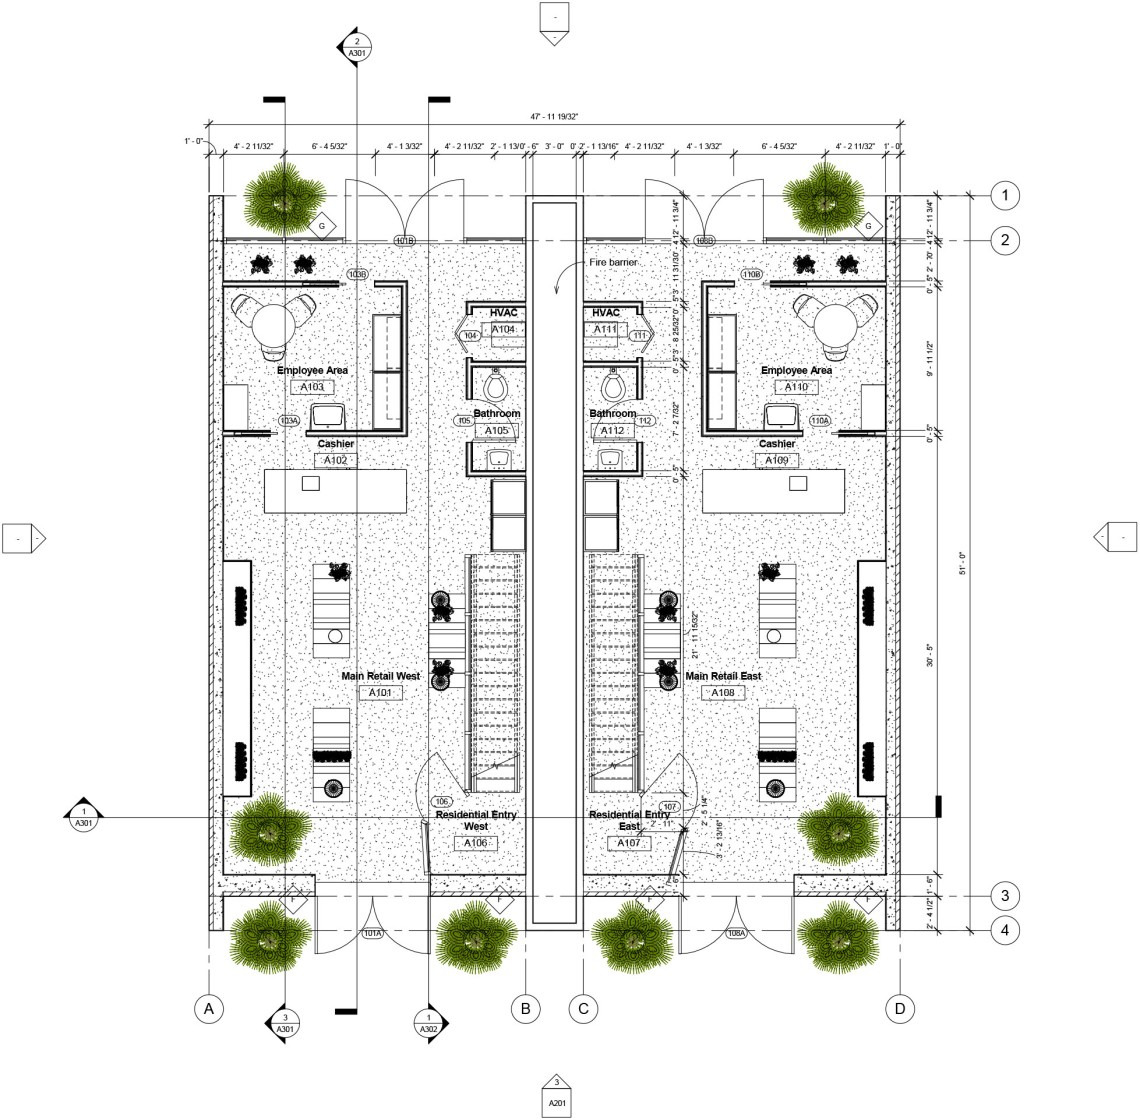 Kitchen Floor Plans And Elevations: 2-D Plans, Elevations, & Sections